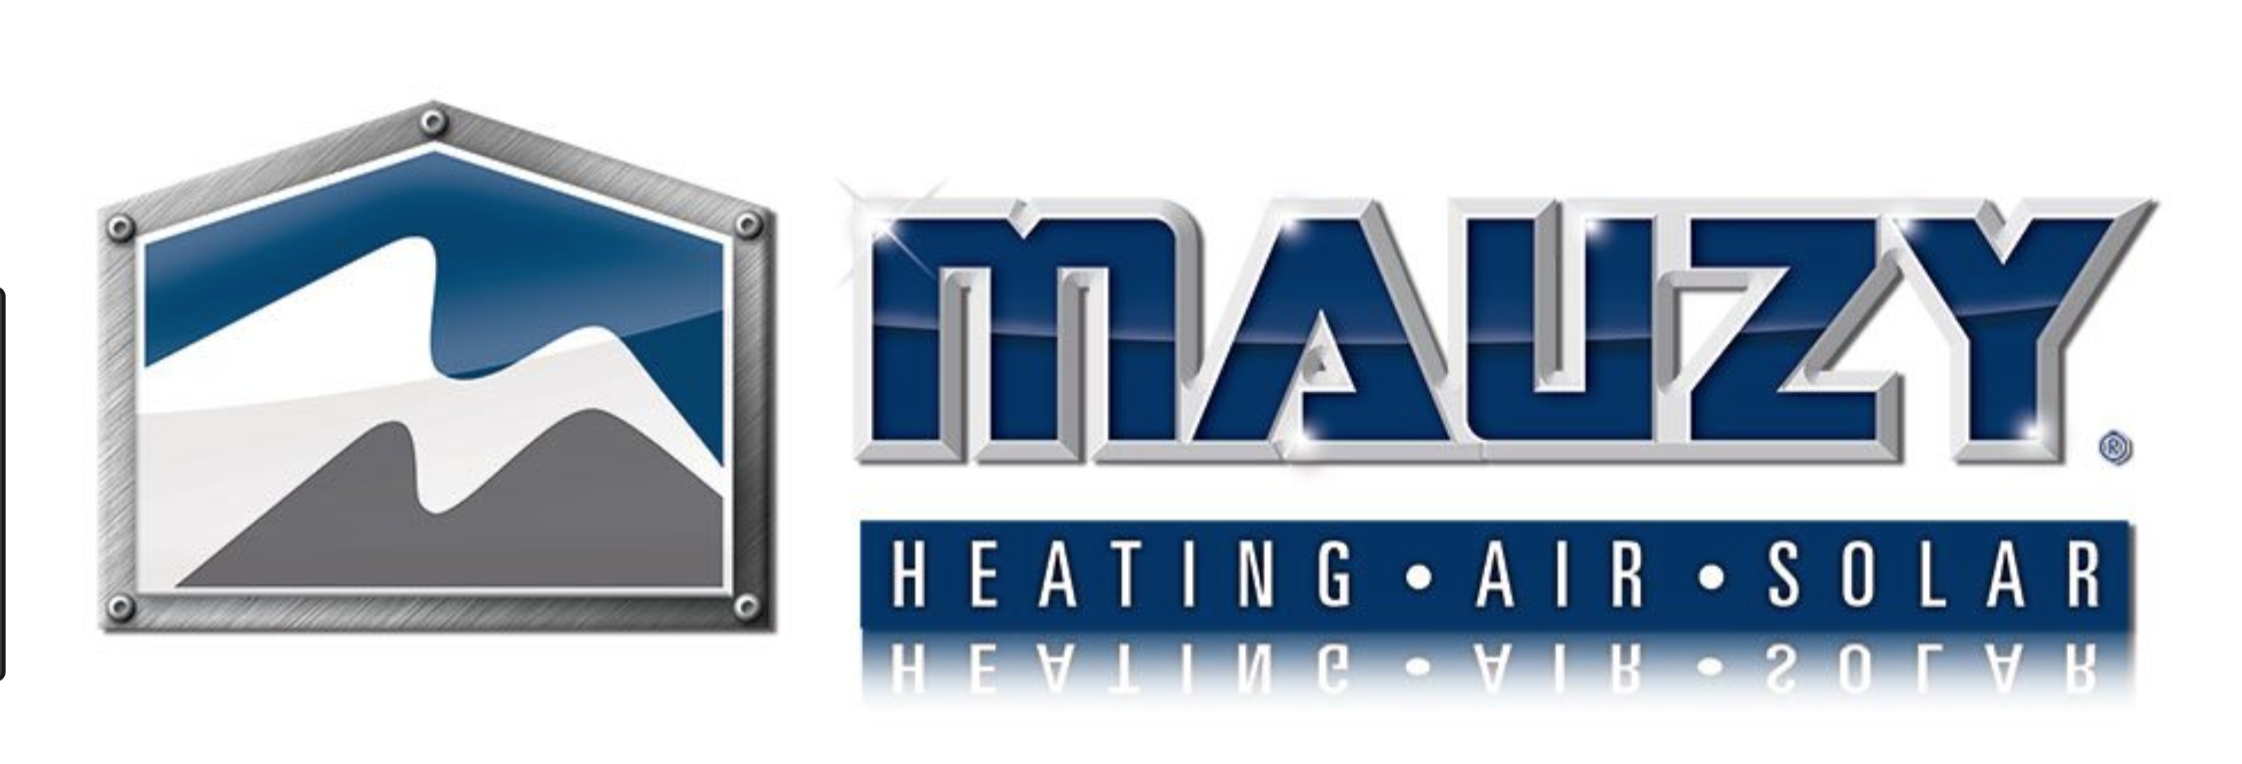 Heating and Cooling San Diego, Heating and Cooling San Diego ca, Heating and Cooling San Die, Heating and Cooling, Heating and Cooling company, san diego heating and cooling